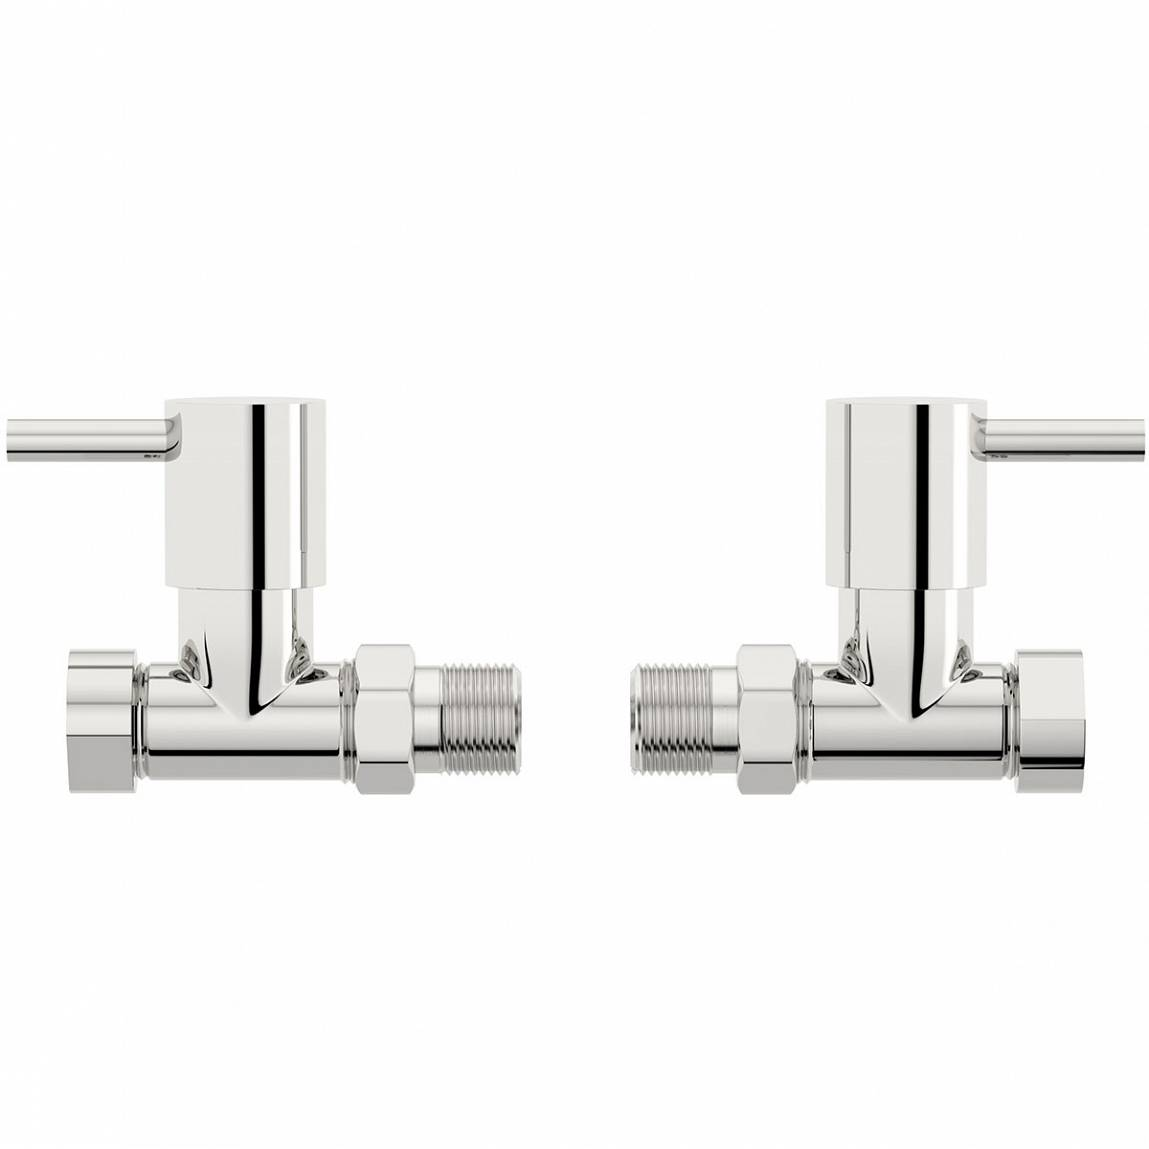 Image of Secta Straight Radiator Valves